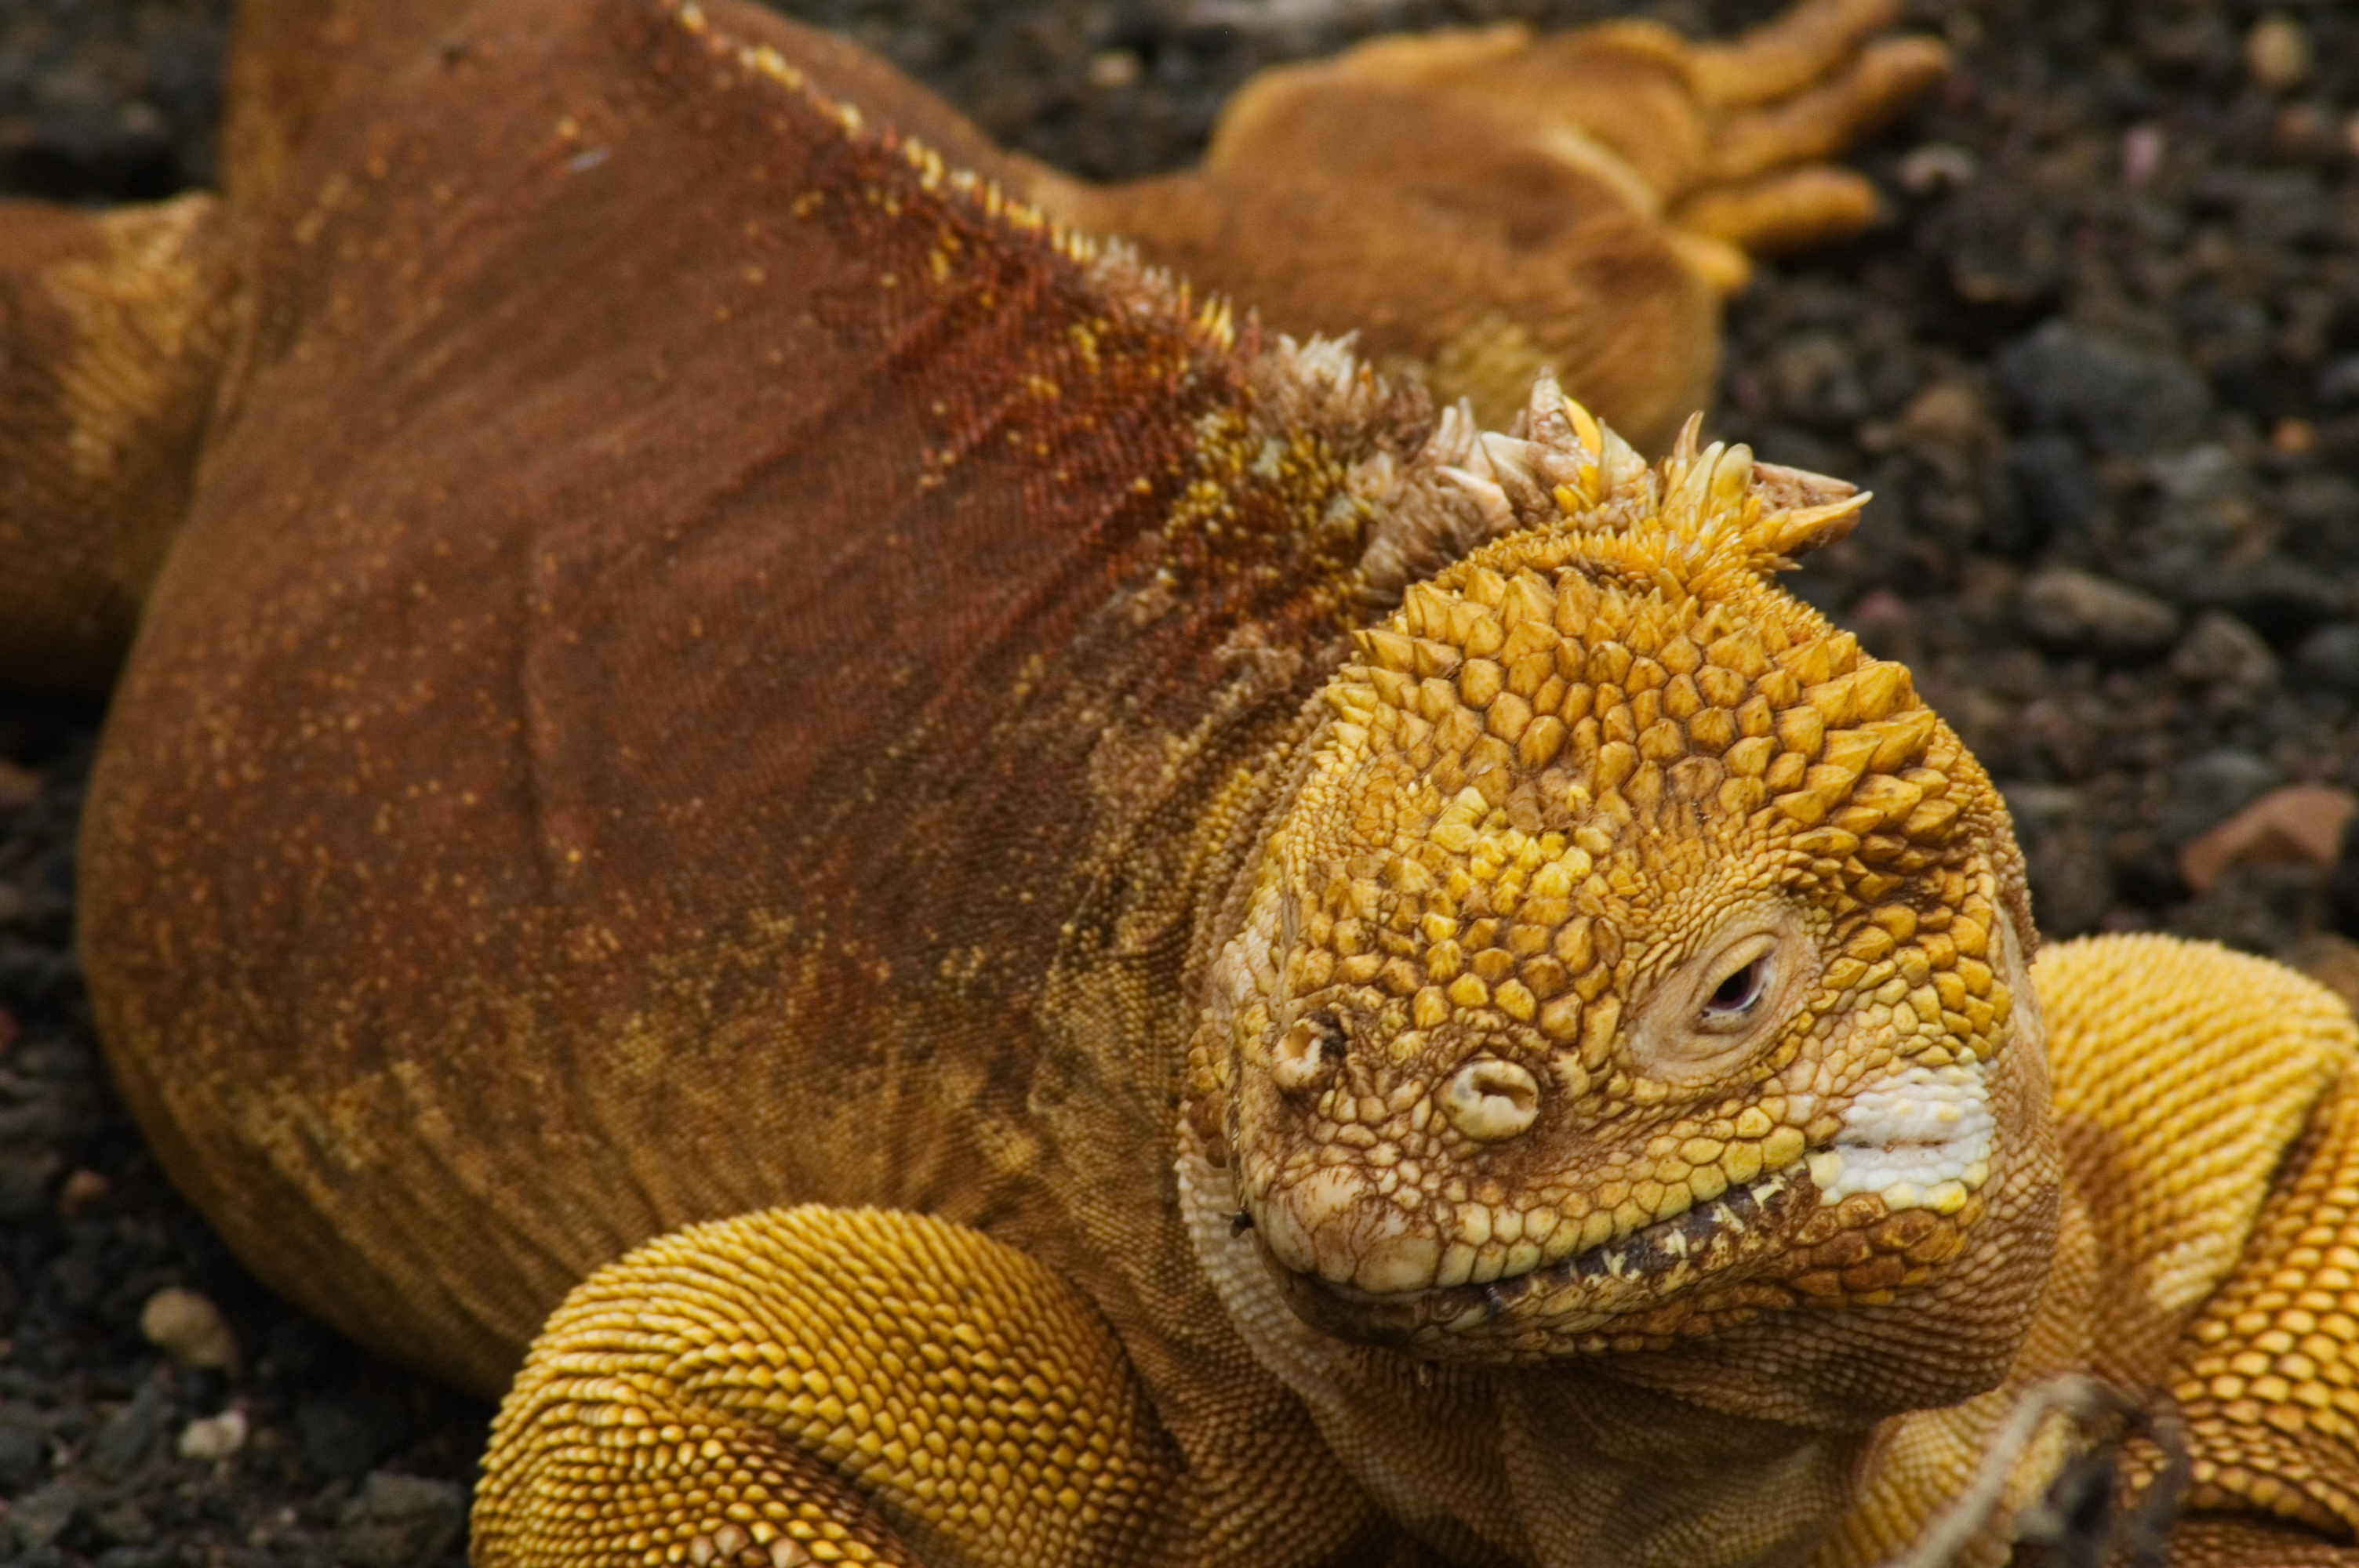 Images of Galapagos Land Iguana | 3008x2000